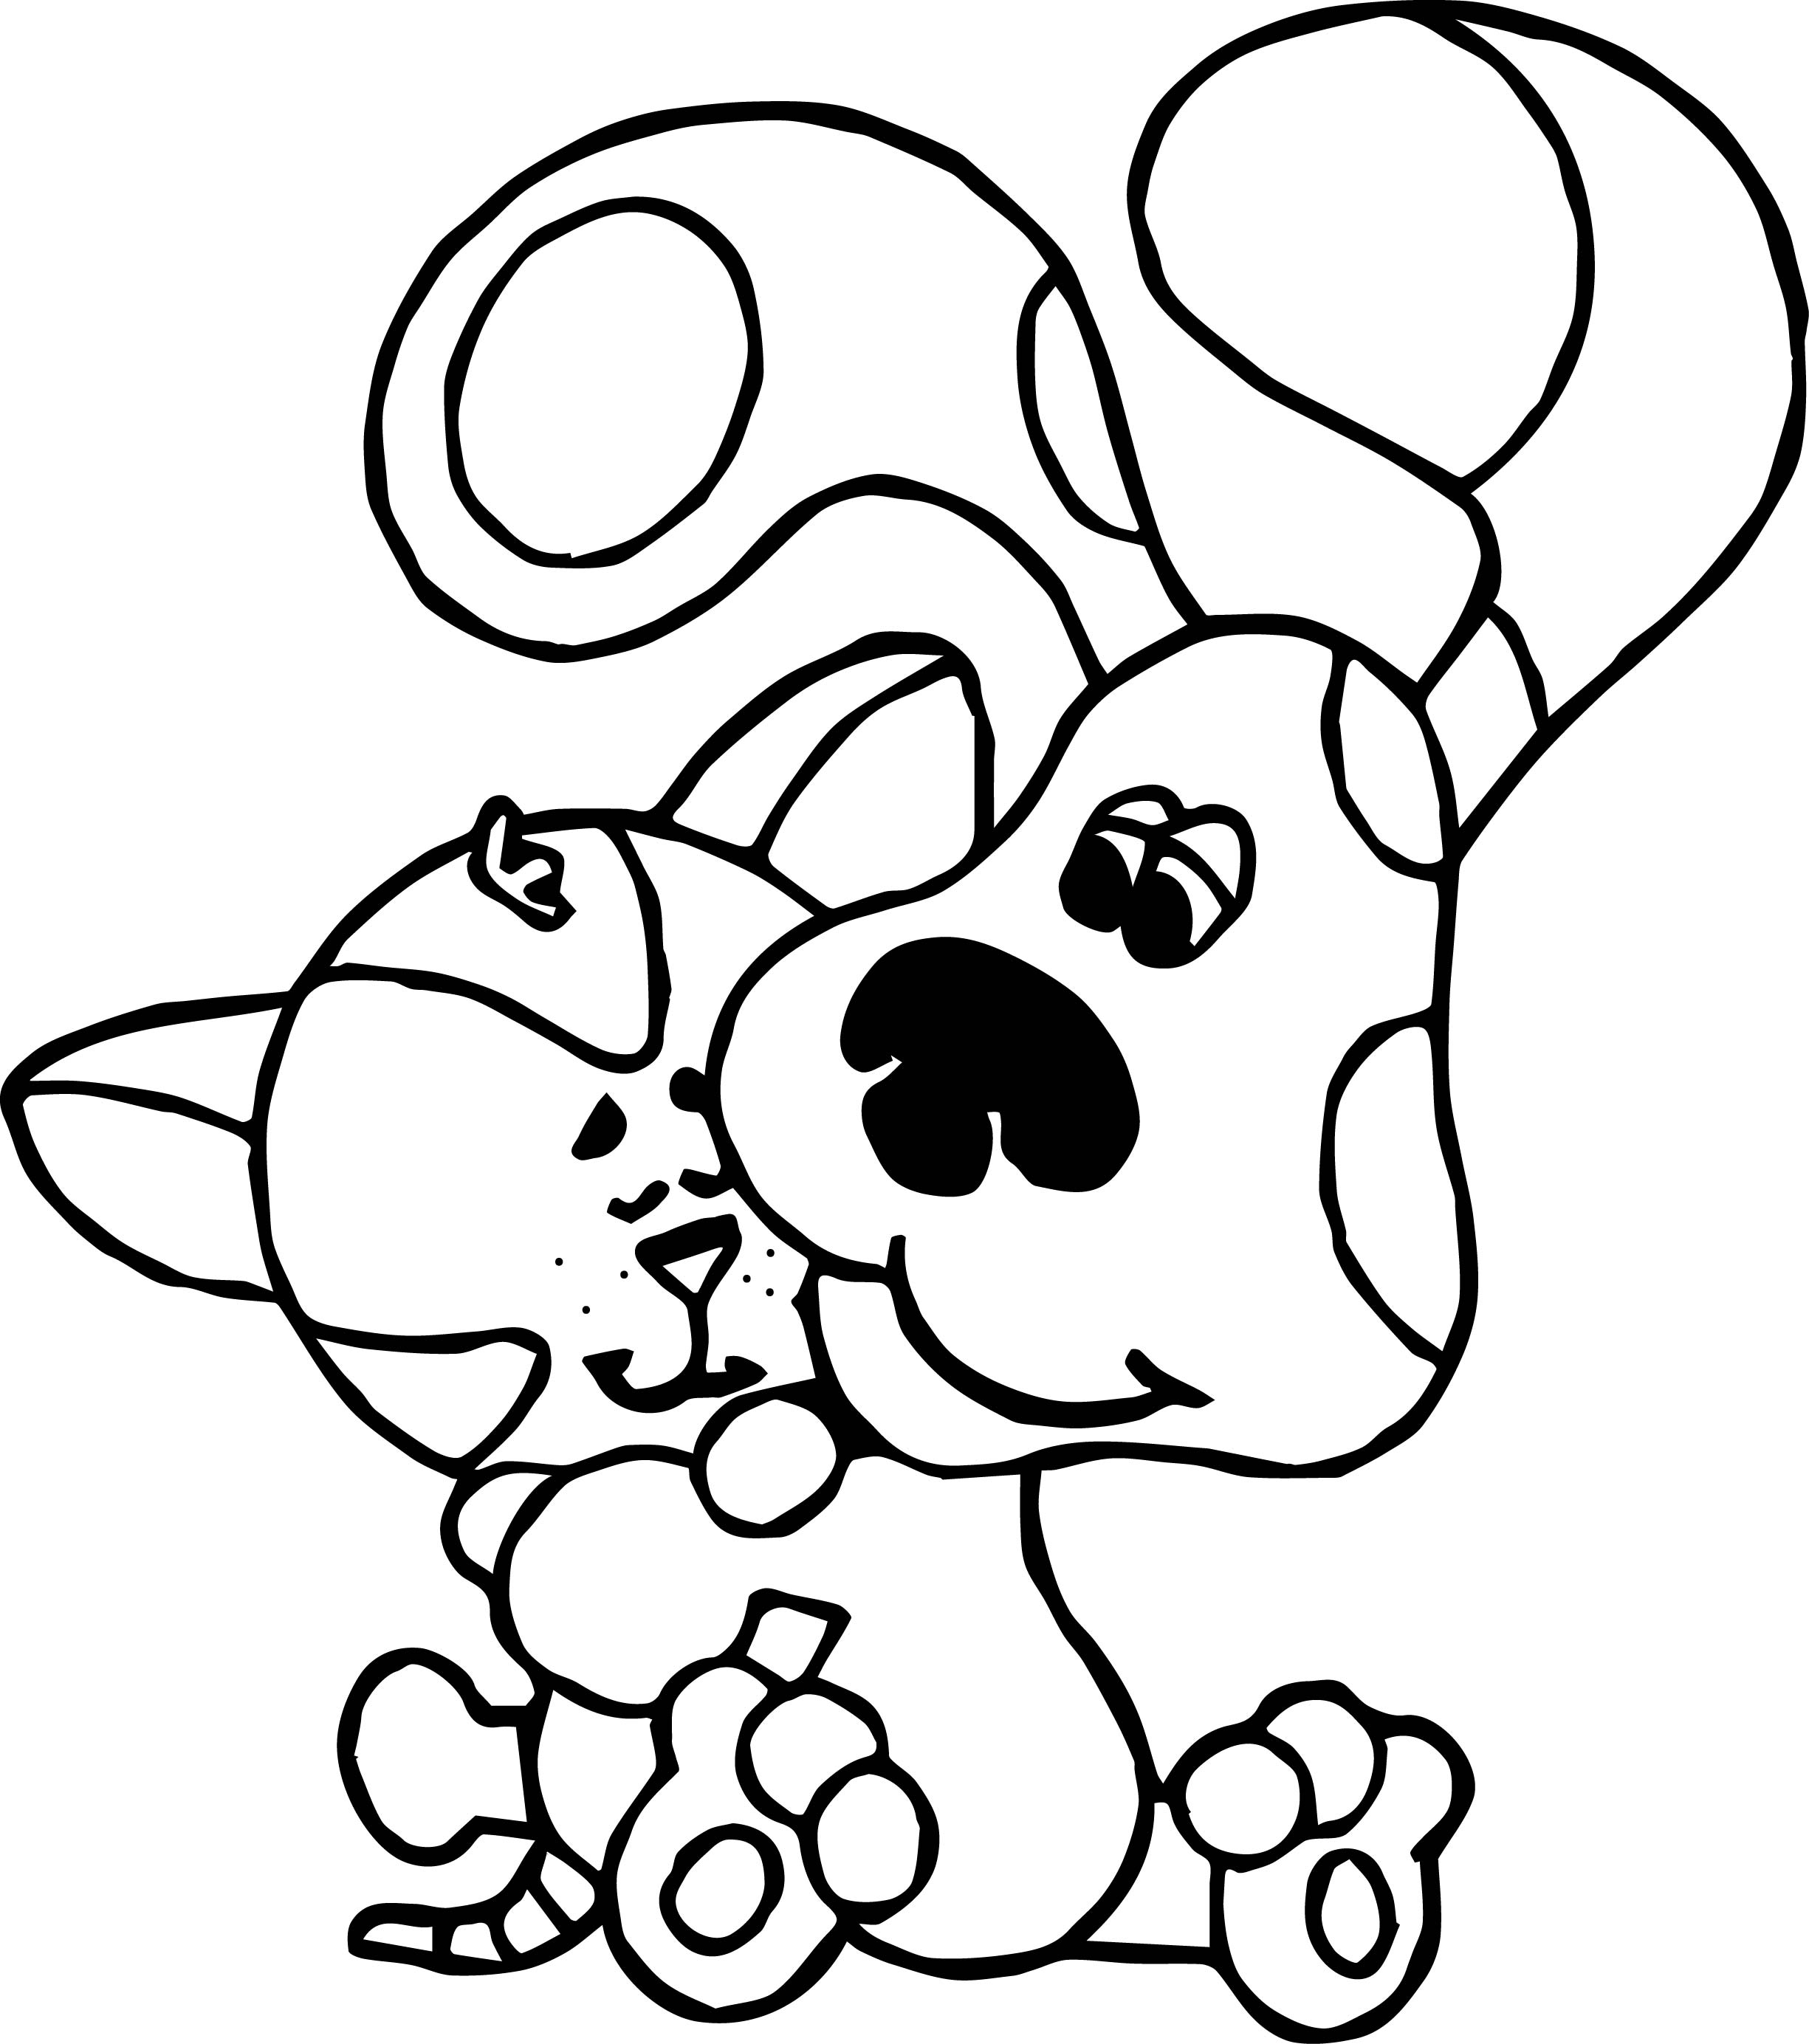 blue dog coloring pages - photo#10